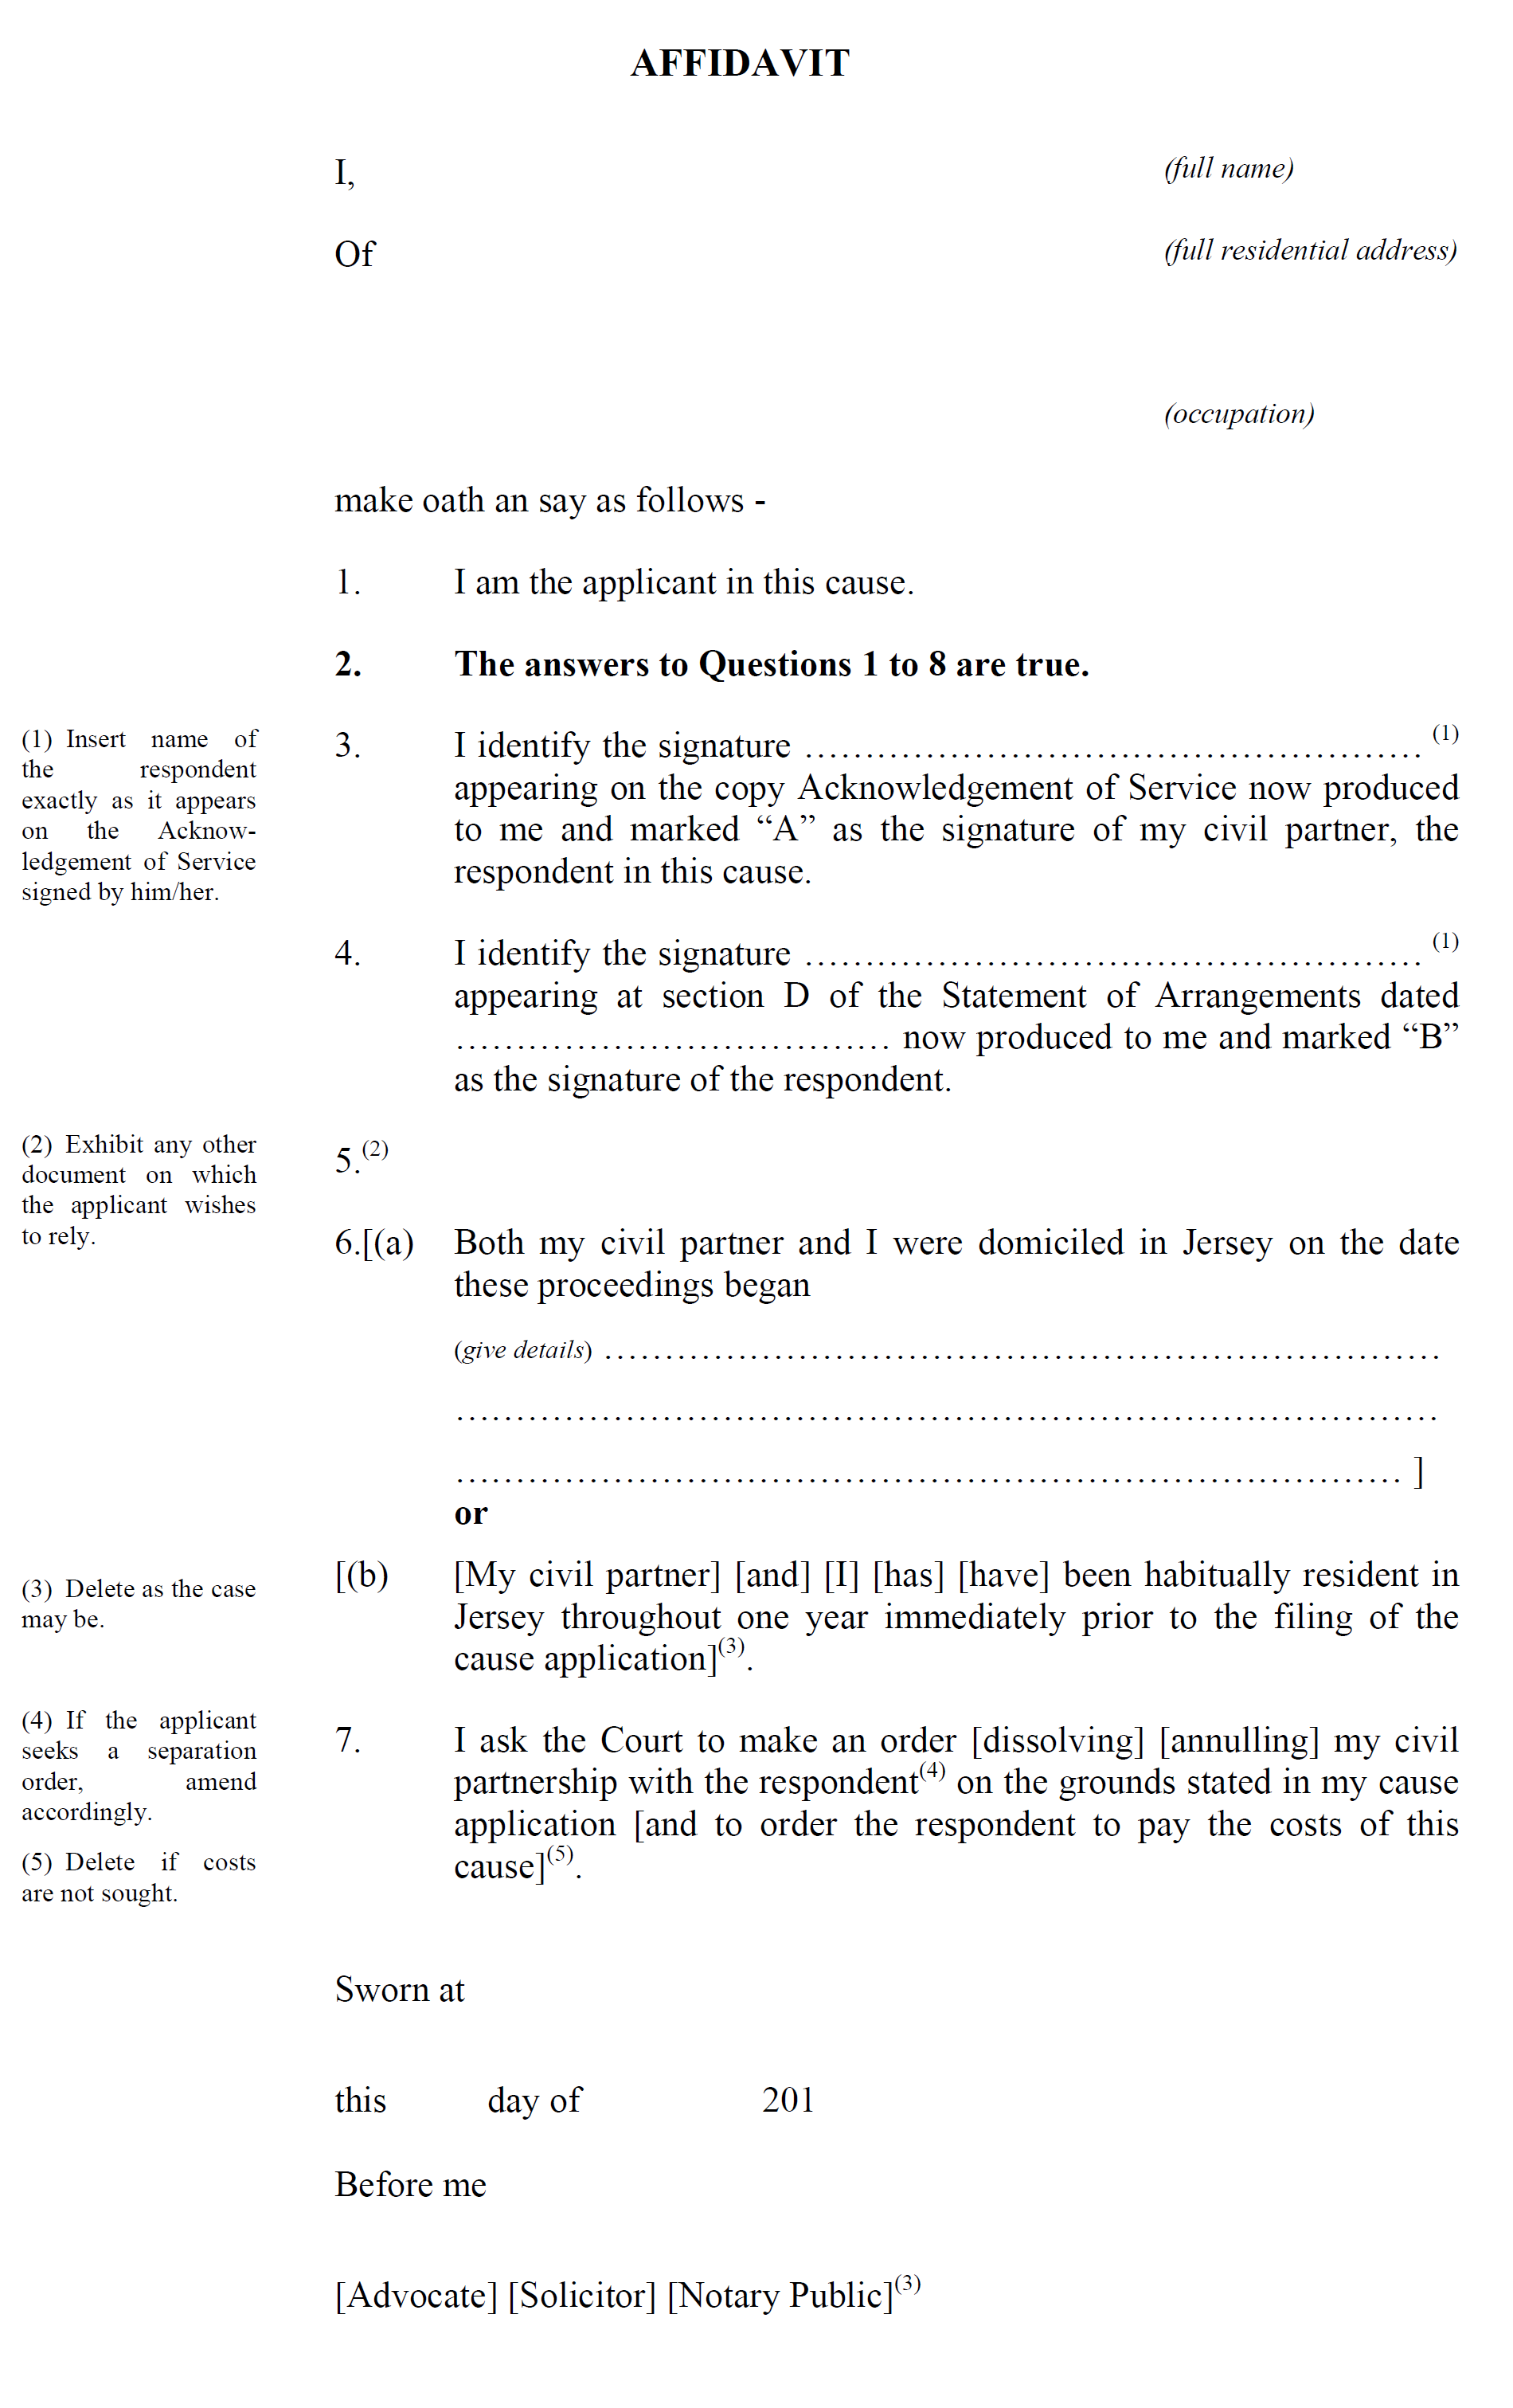 Form CP7 - Affidavit by applicant in support of cause application on the grounds of one year's or two years' separation, or on the ground of nullity - continued